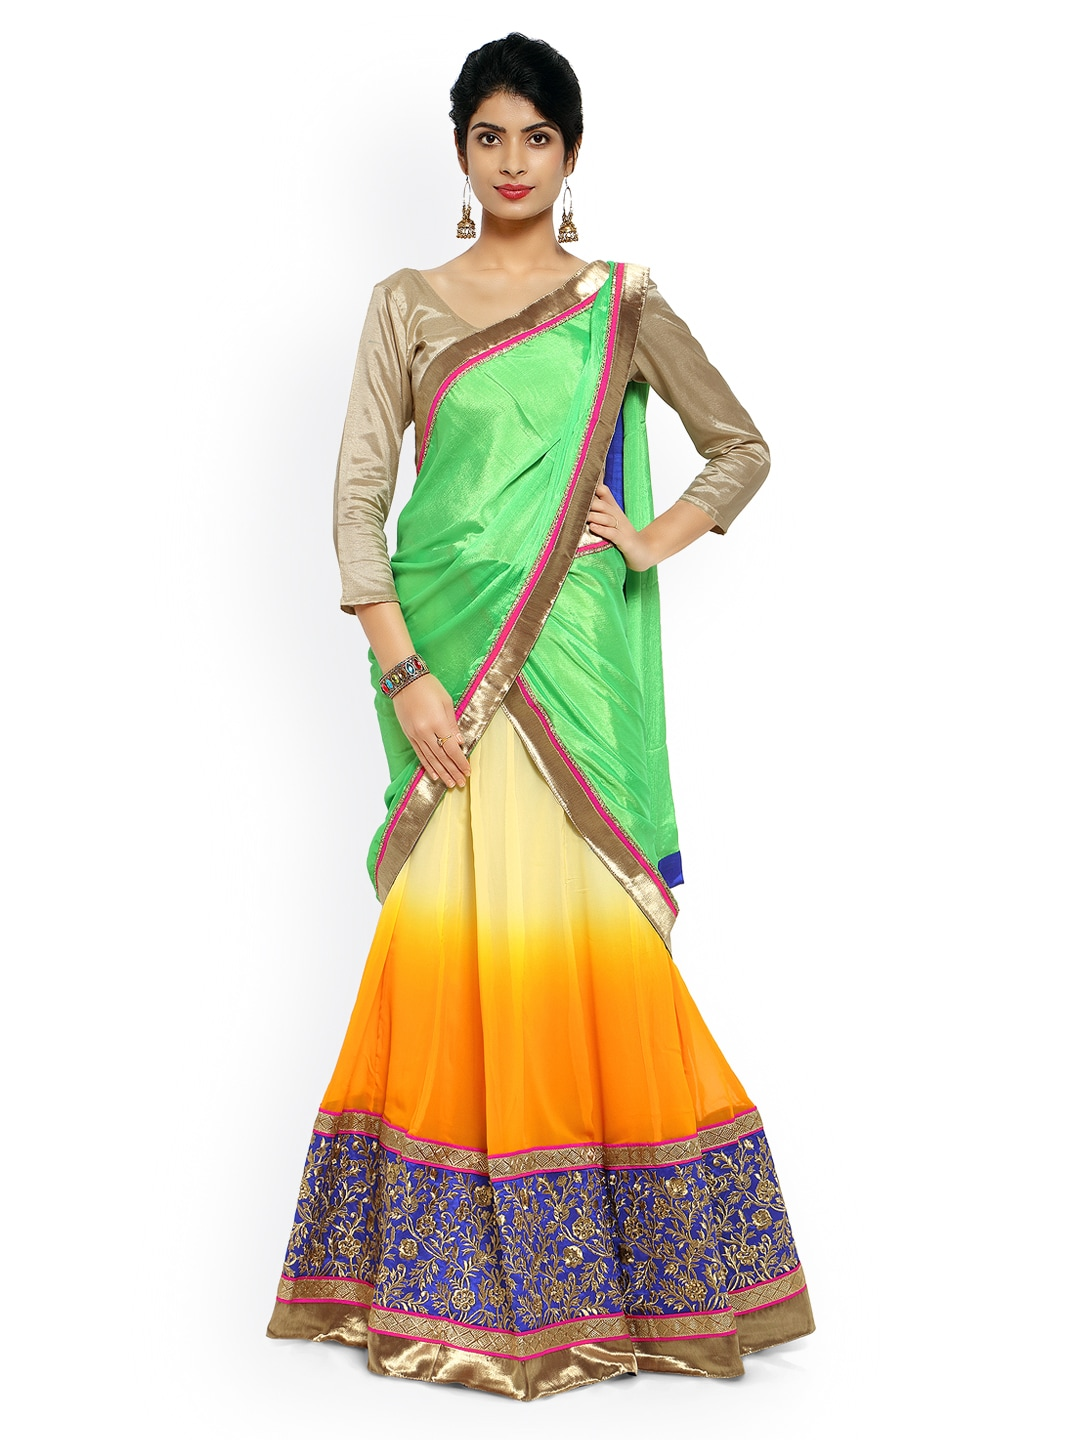 Touch Trends Multicoloured Georgette Semi-Stitched Lehenga Choli Material with Dupatta image